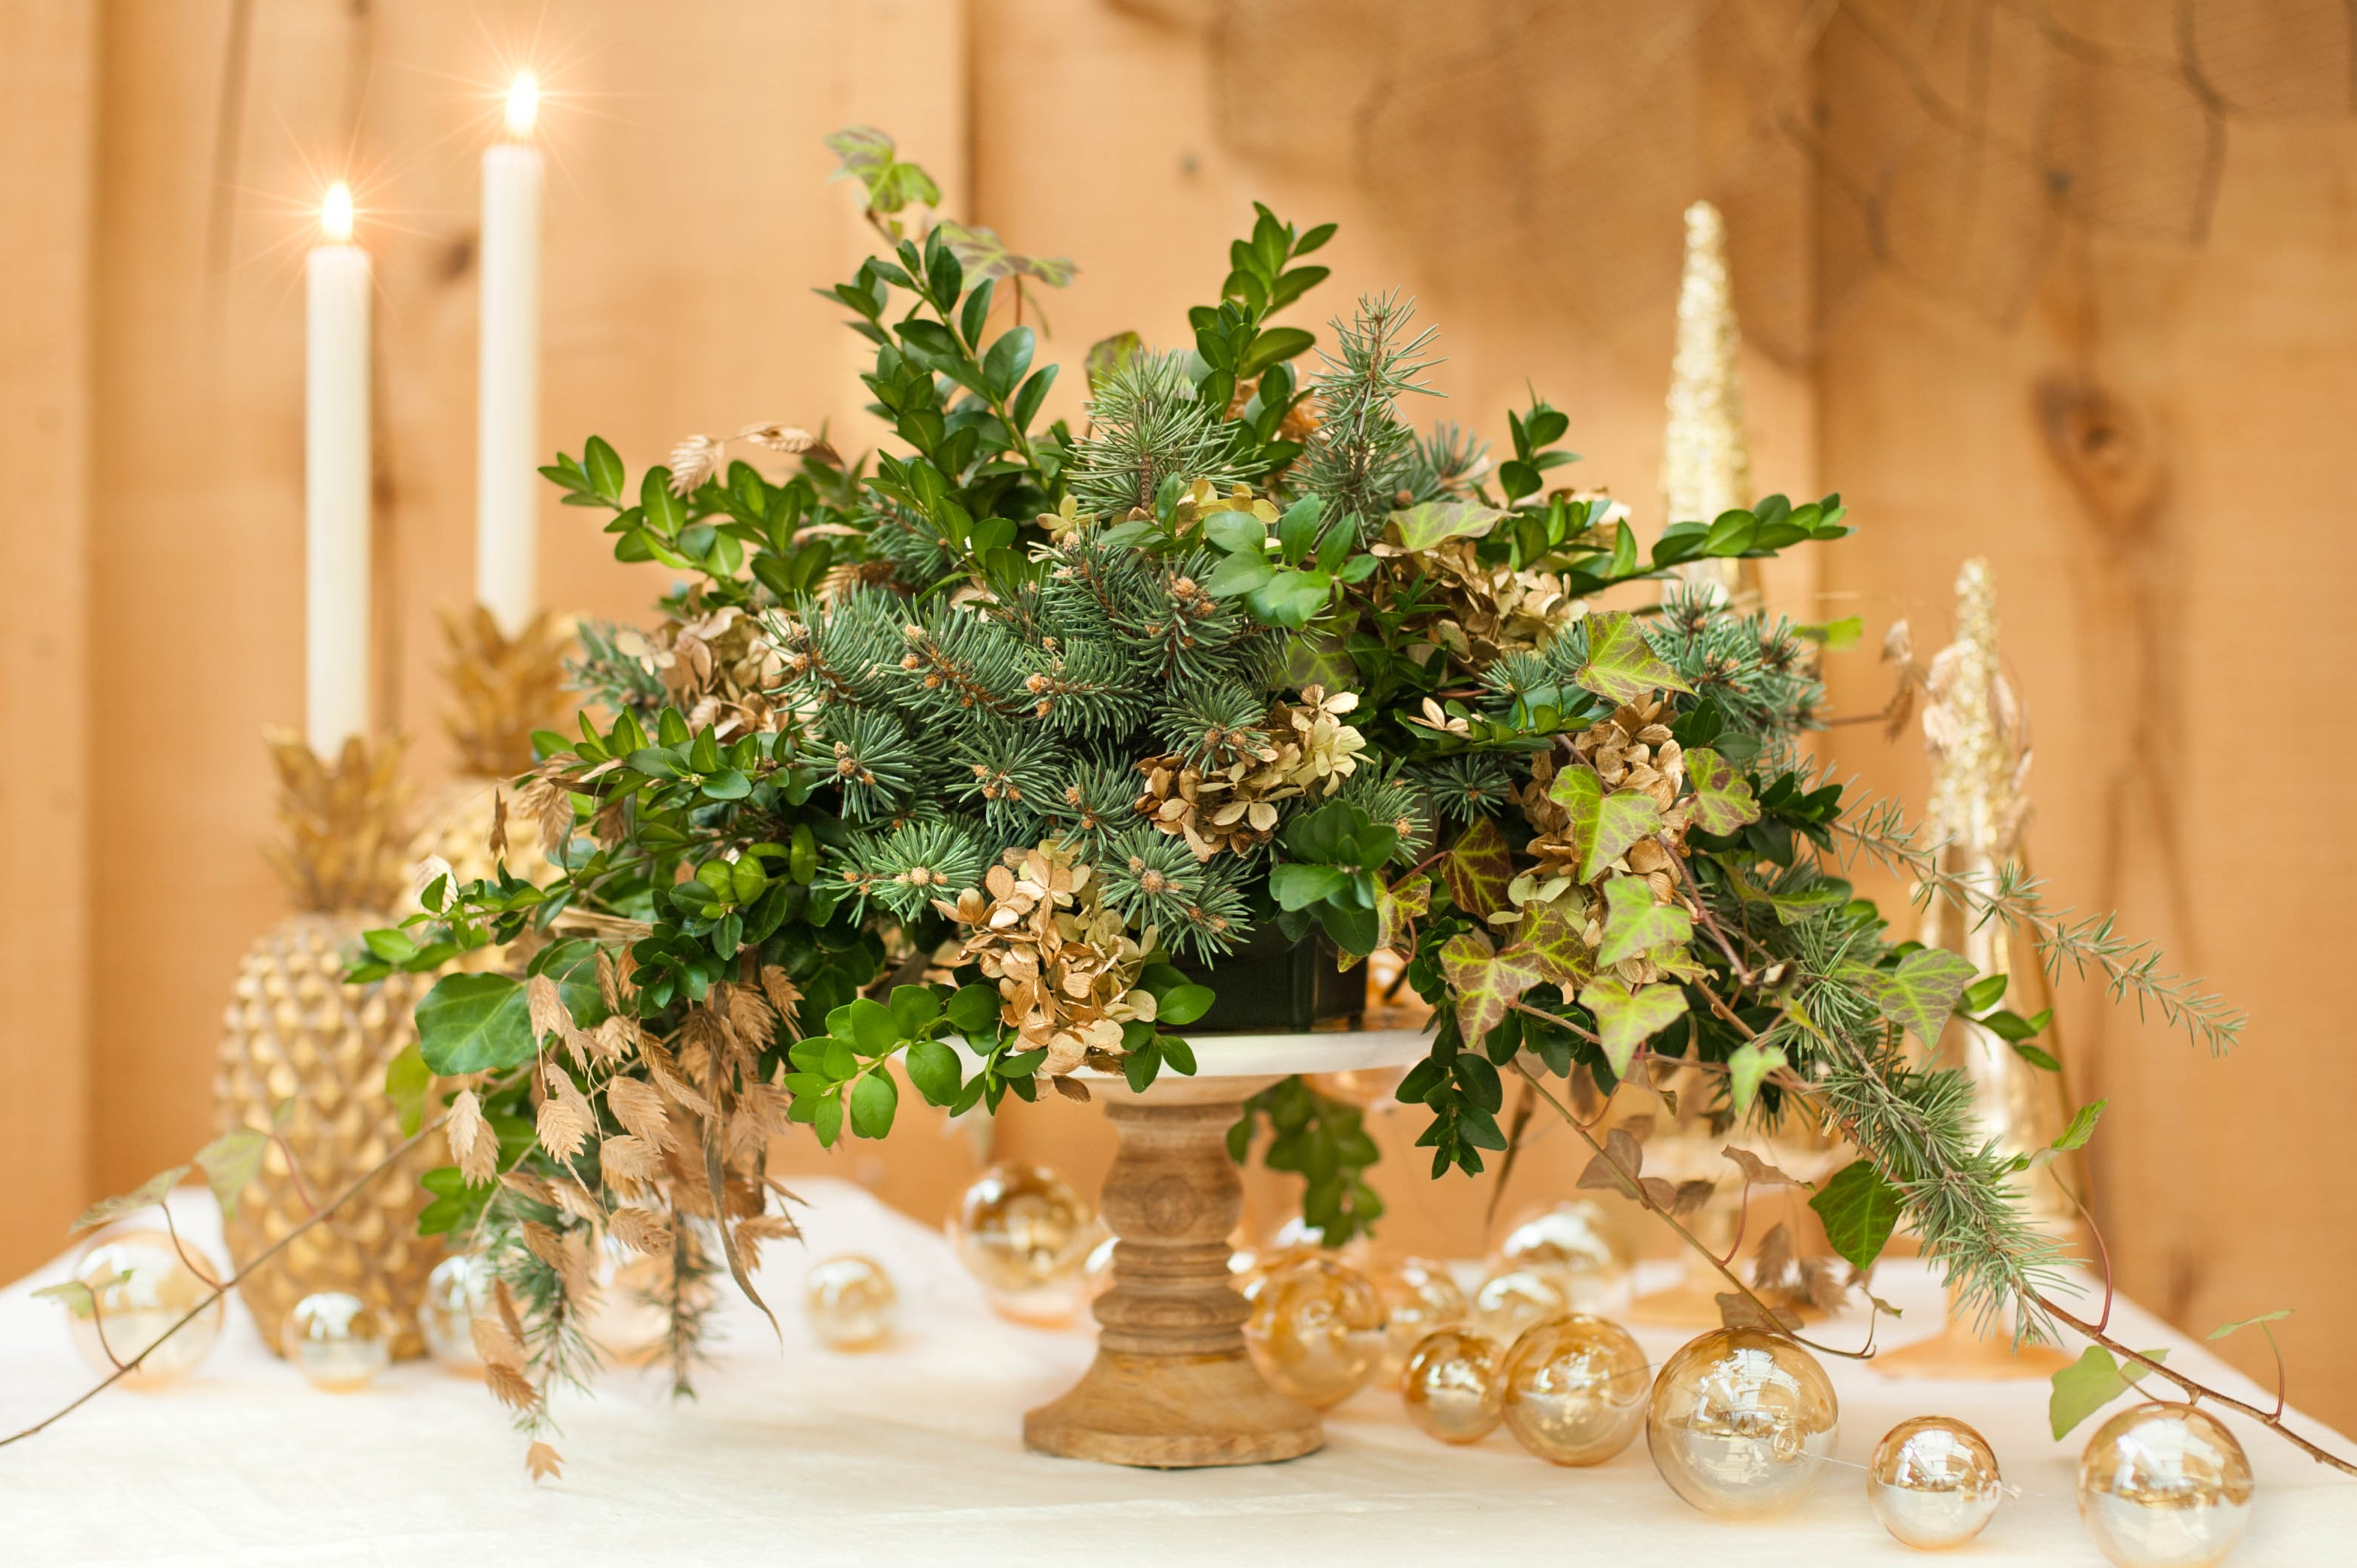 Fresh Greens, Holiday Centerpiece, Gold and White, Decor